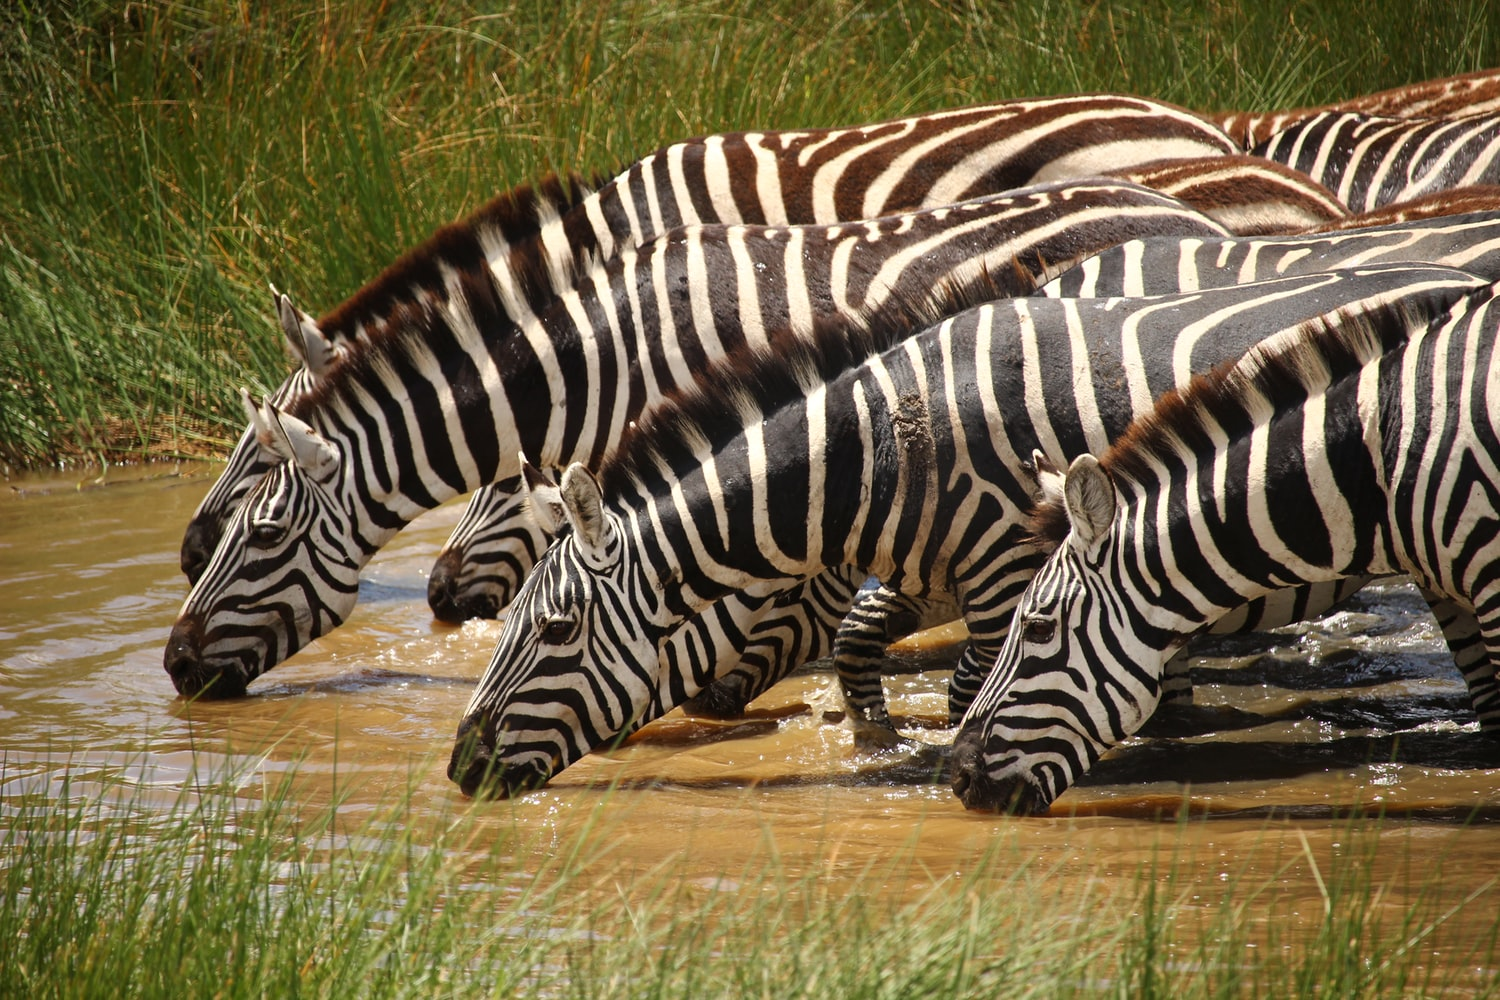 A dazzle of zebra drinking water at Mara River during small group joining Masai Mara National Reserve safari Kenya tours